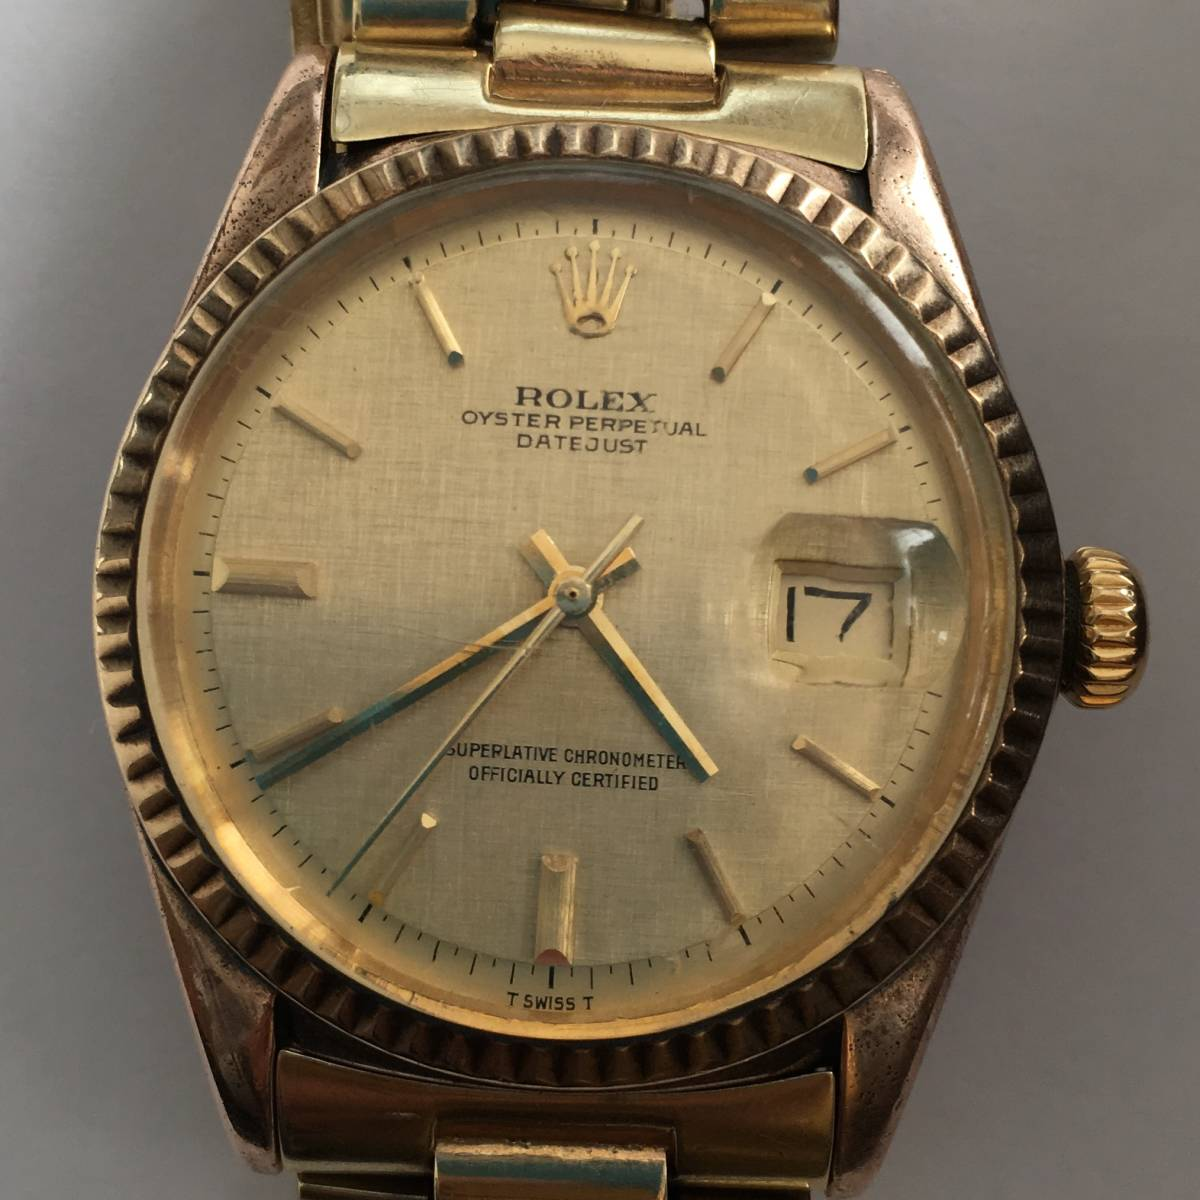 new arrival 69bd1 84076 ROLEX OYSTER PERPETUAL DATEJUST 1601 ロレックス オイスター ...